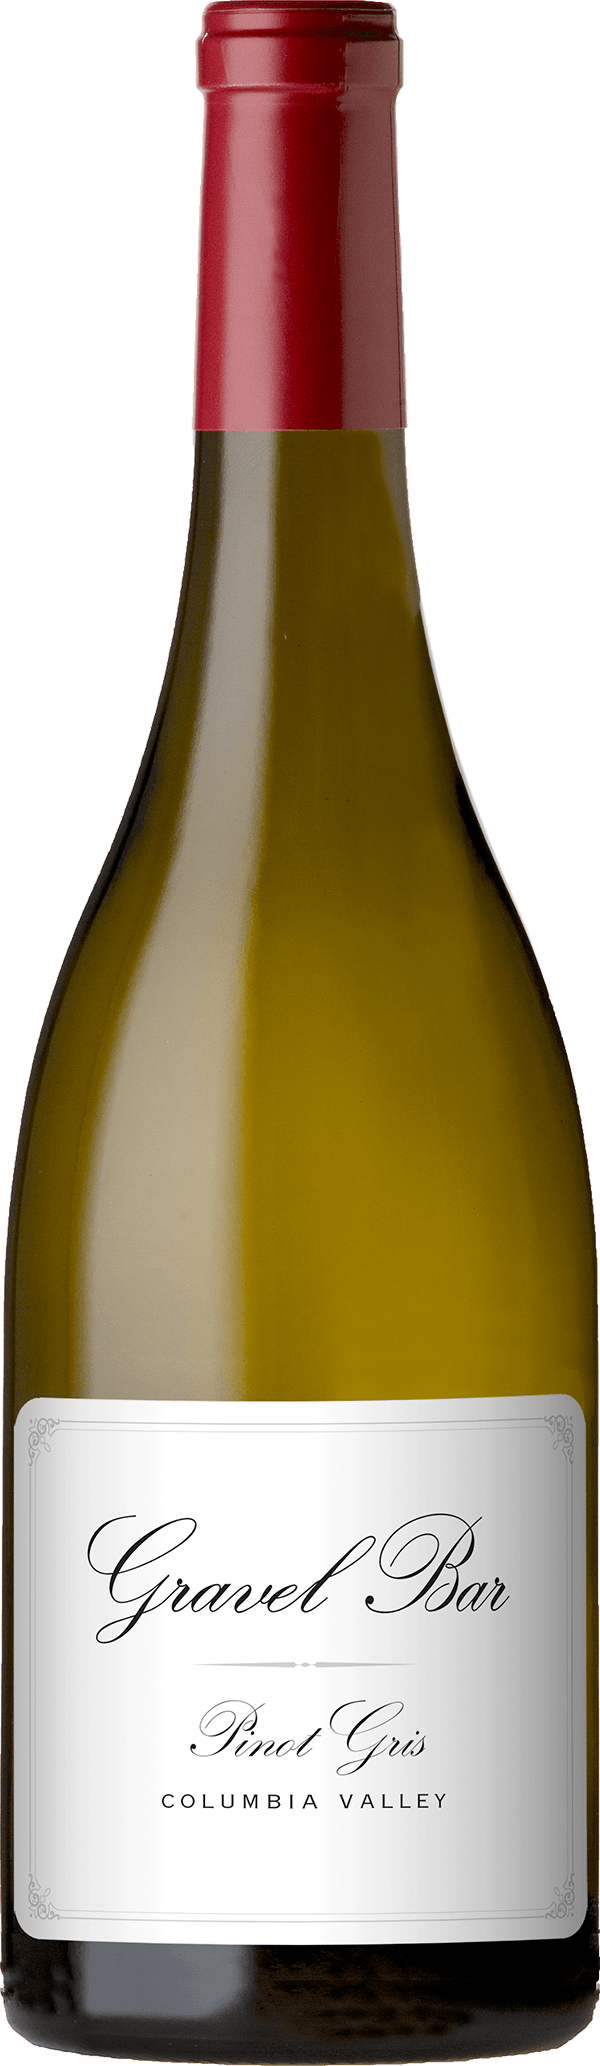 A bottle of the Pinot Gris